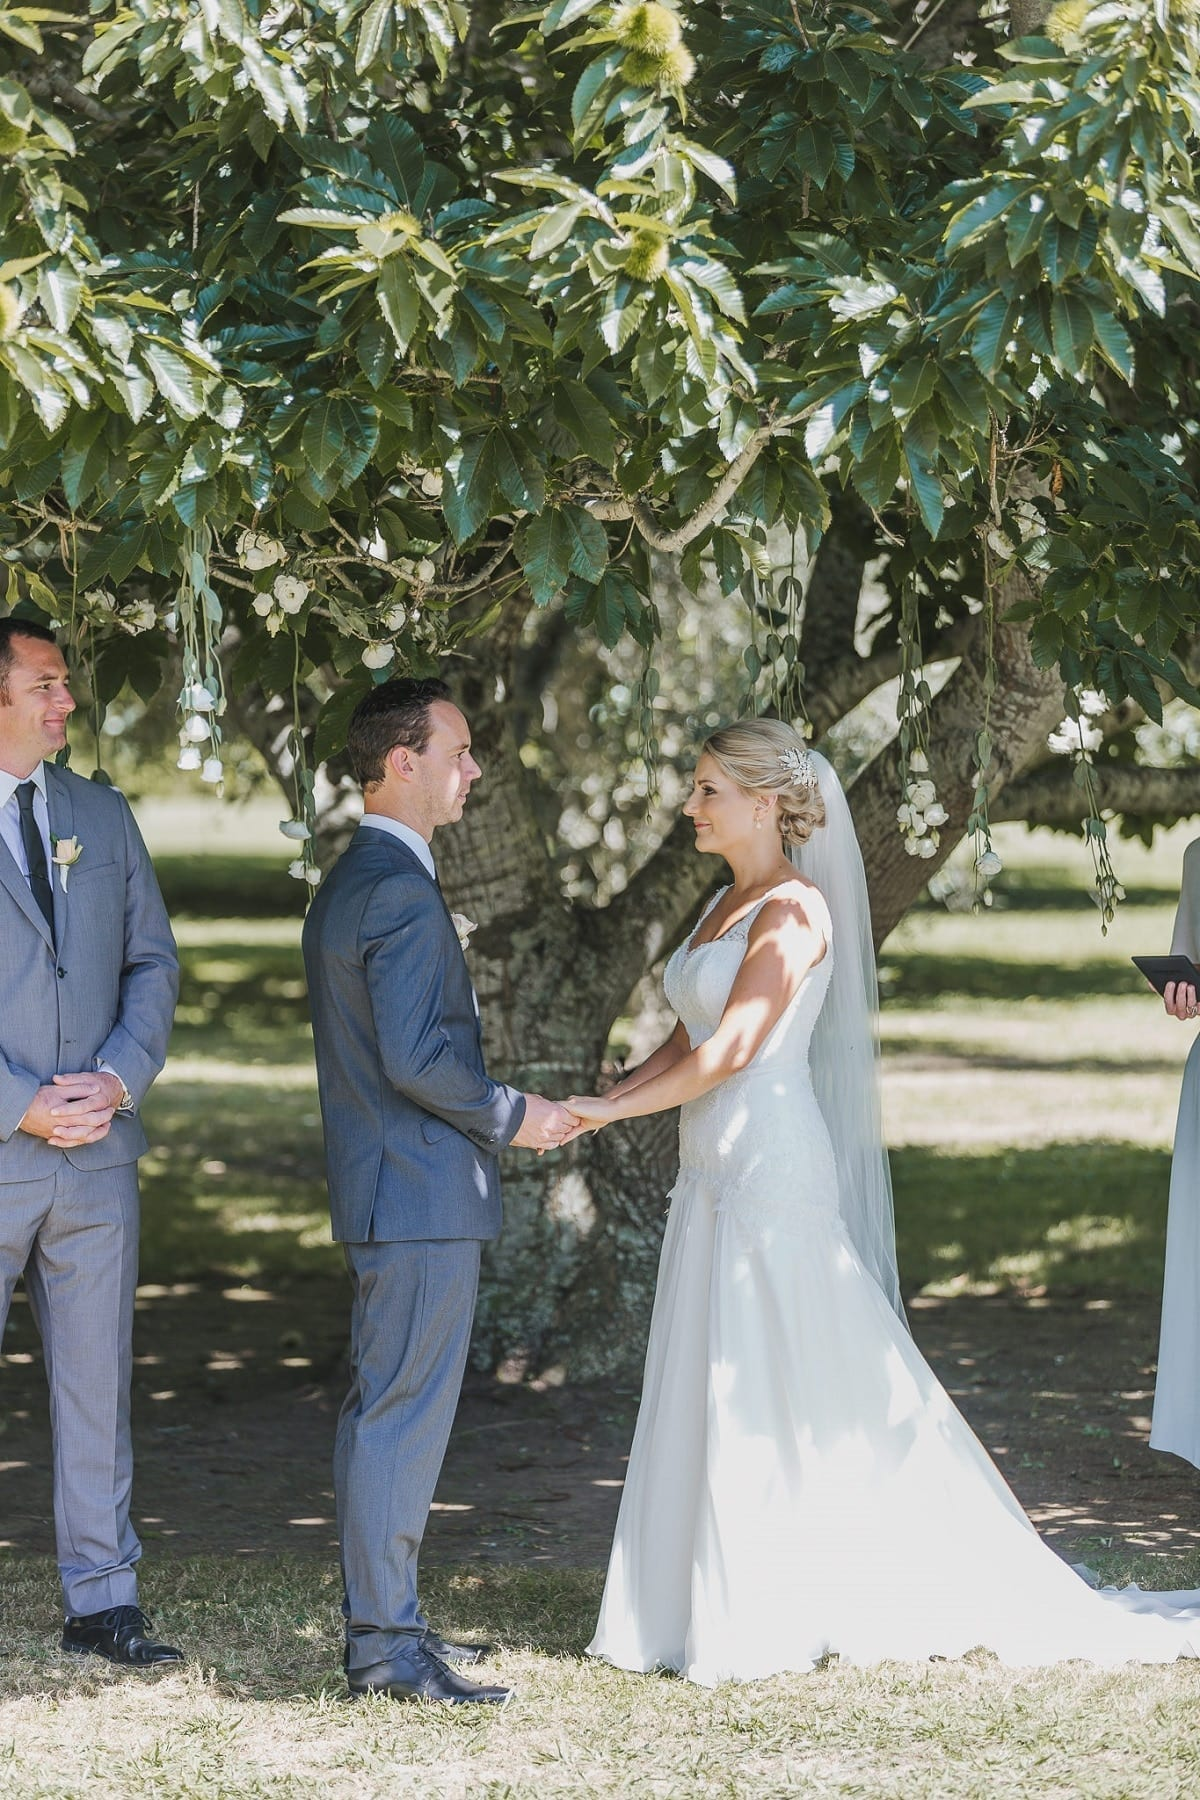 Real Weddings | Vinka Design | Real Brides Wearing Vinka Gowns | Sophie and Auldan outdoors under tree